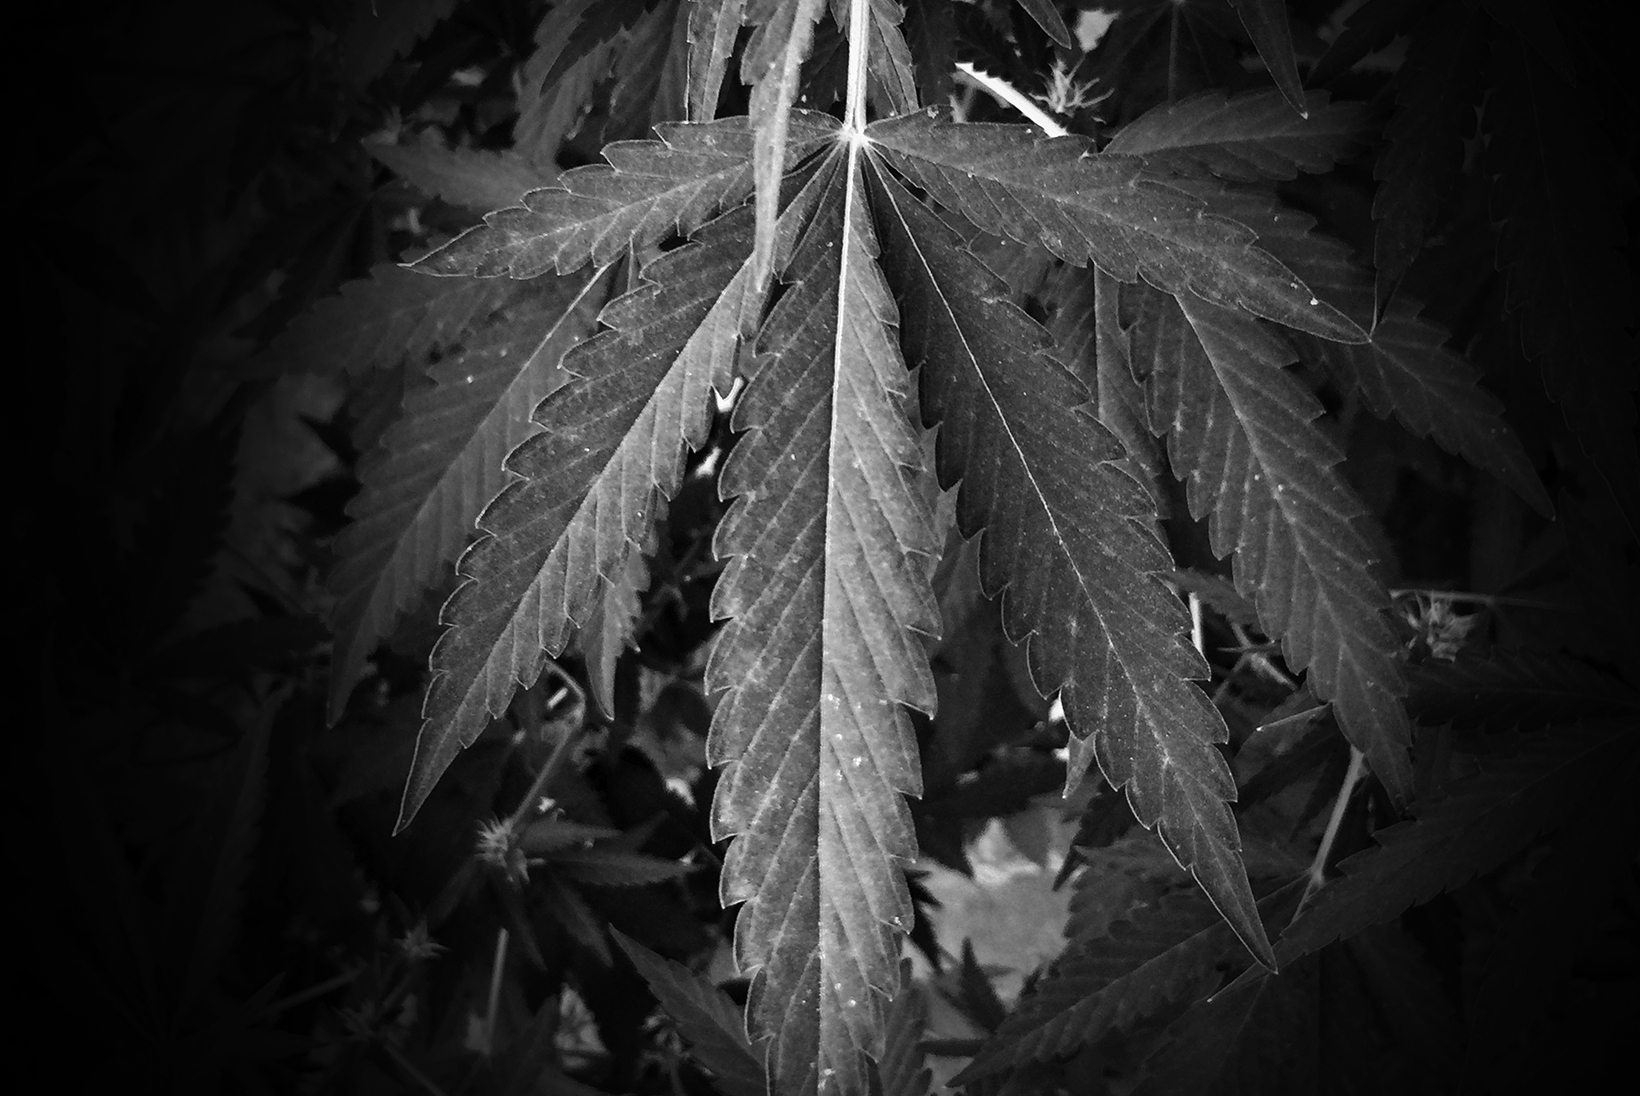 A close-up of a marijuana leaf. The rest of the background is blacked out by a dark vignette.